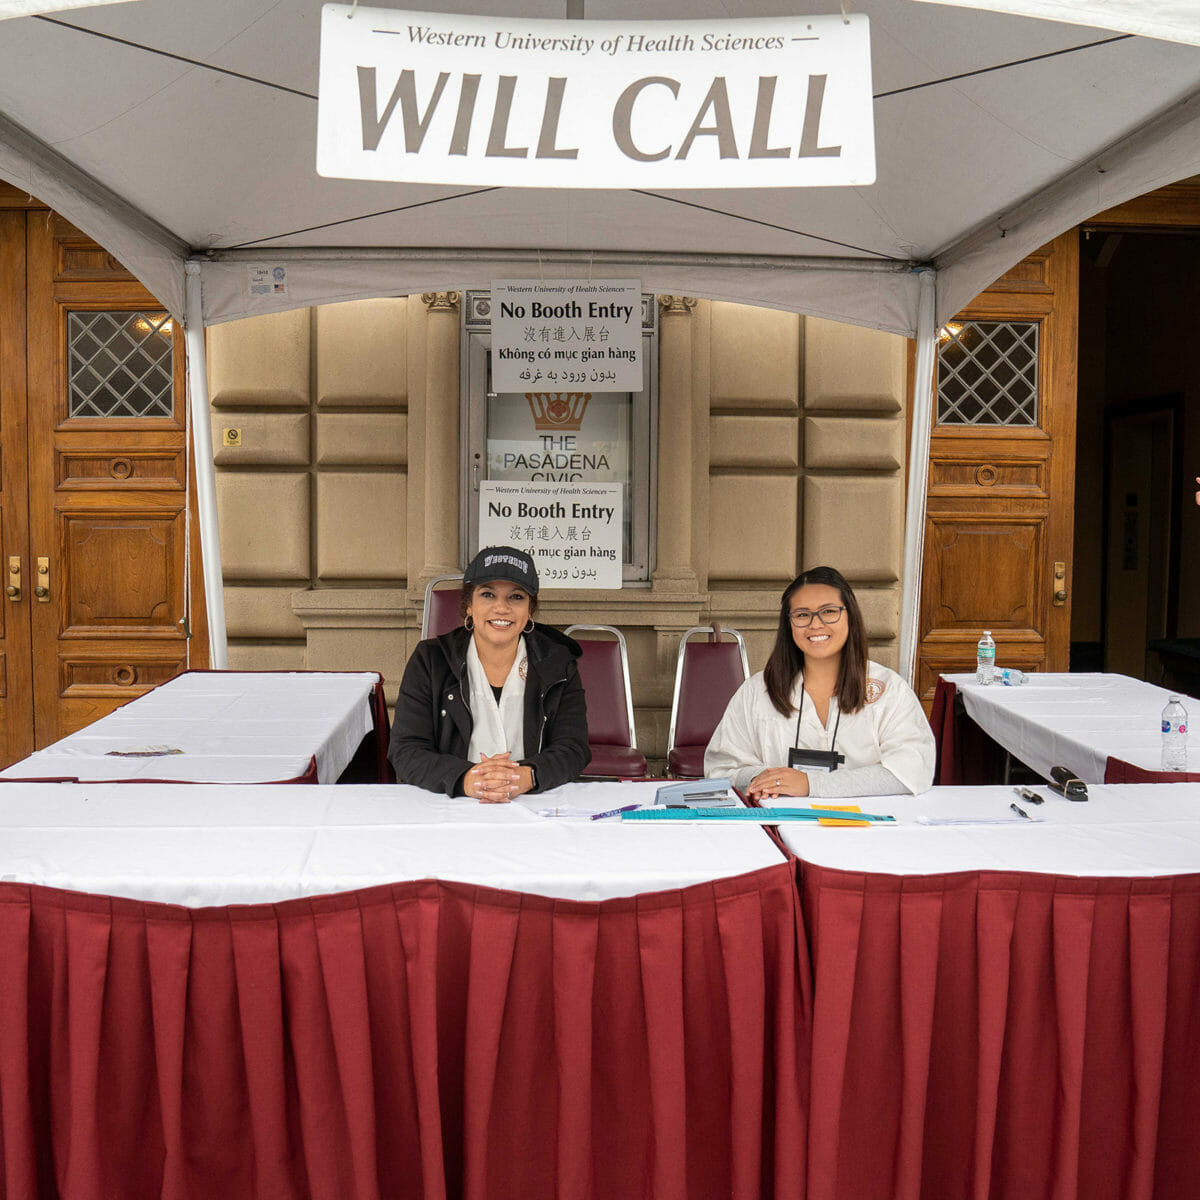 Commencement Assistants working the will-call both